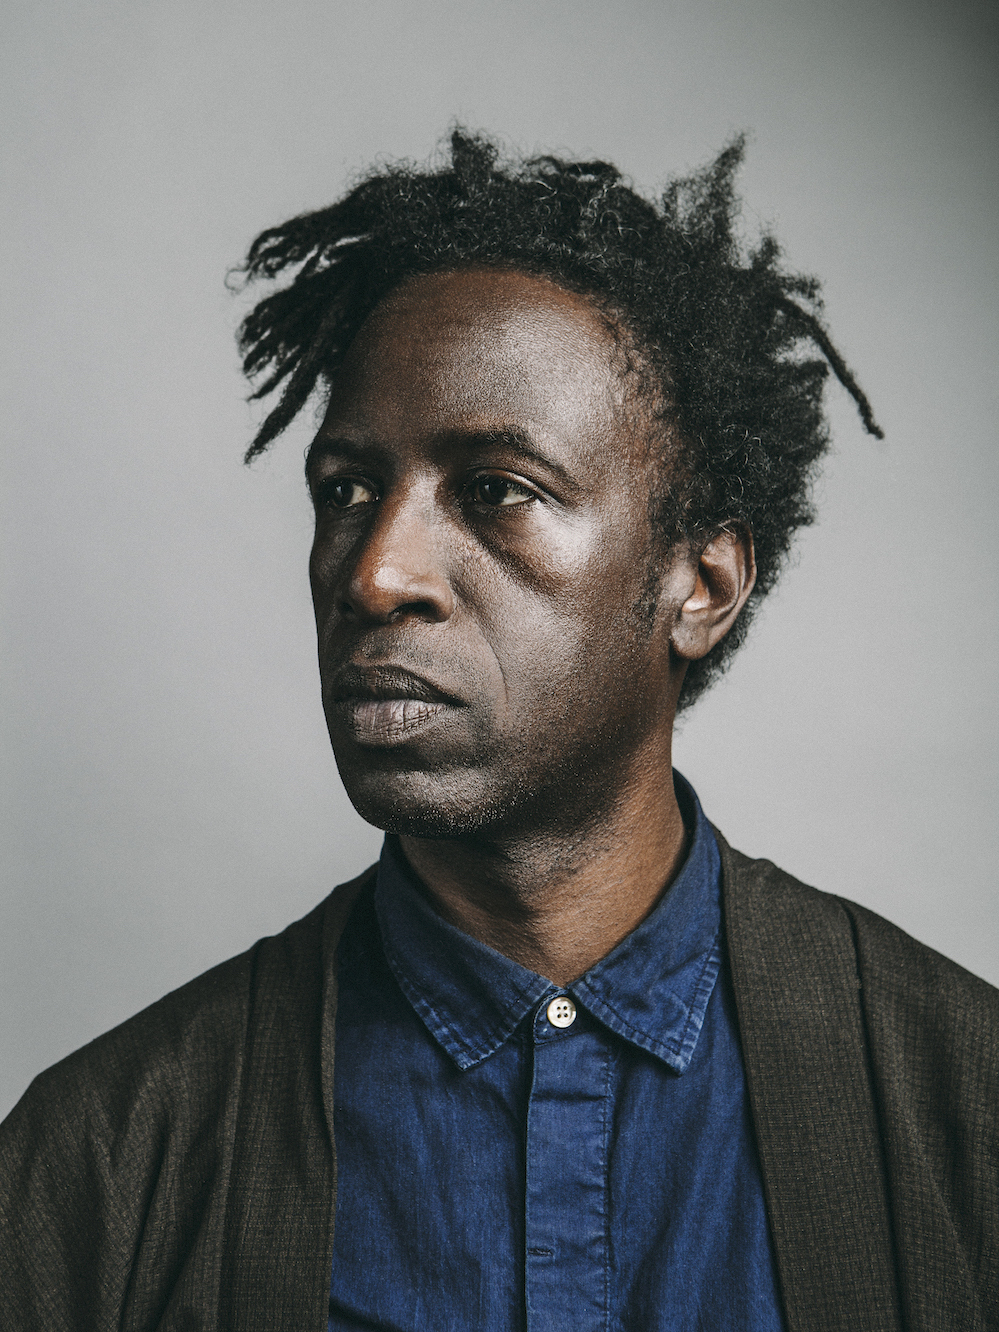 an analysis of the poetry of saul williams and the impacts of hip hop on it In hop-hop and rap, while some musicians are more talented than others, and while rap lyrics do possess musicality (repetition, assonance, alliteration), that musicality is incomplete without the beat and notes of the sampled music caplan provides a number of examples of rap lyrics, and some are.